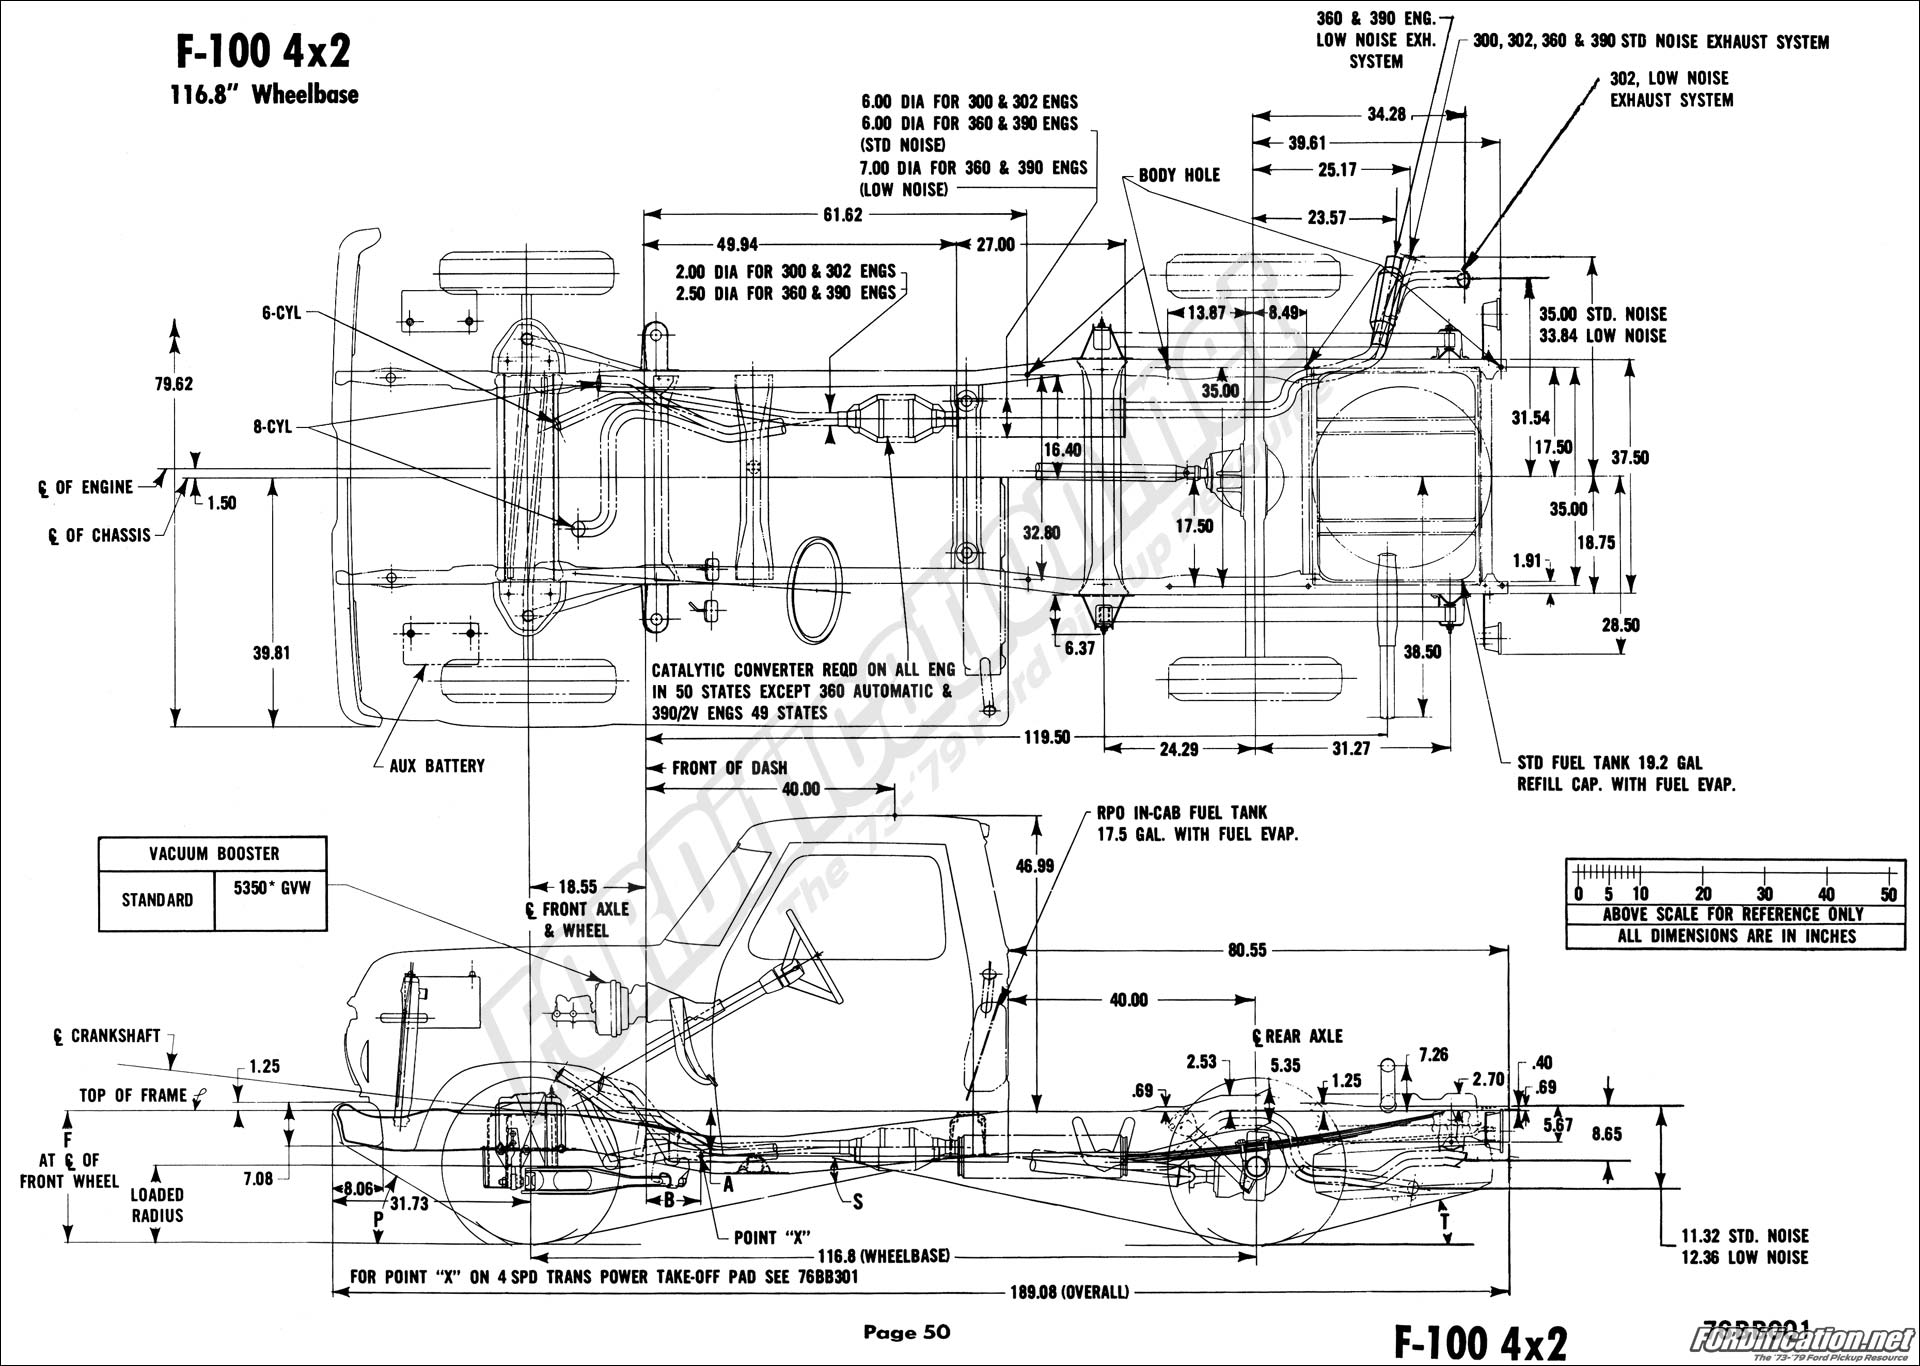 1999 Ford F 250 Fuel Diagram furthermore 1987 F150 Fuel Selector Valve in addition 1993 Corvette Wiring Diagram A7375d8103ba5aee besides Schematics e furthermore 1221317 95 F250 Steering Links. on 1986 ford f 250 wiring diagram